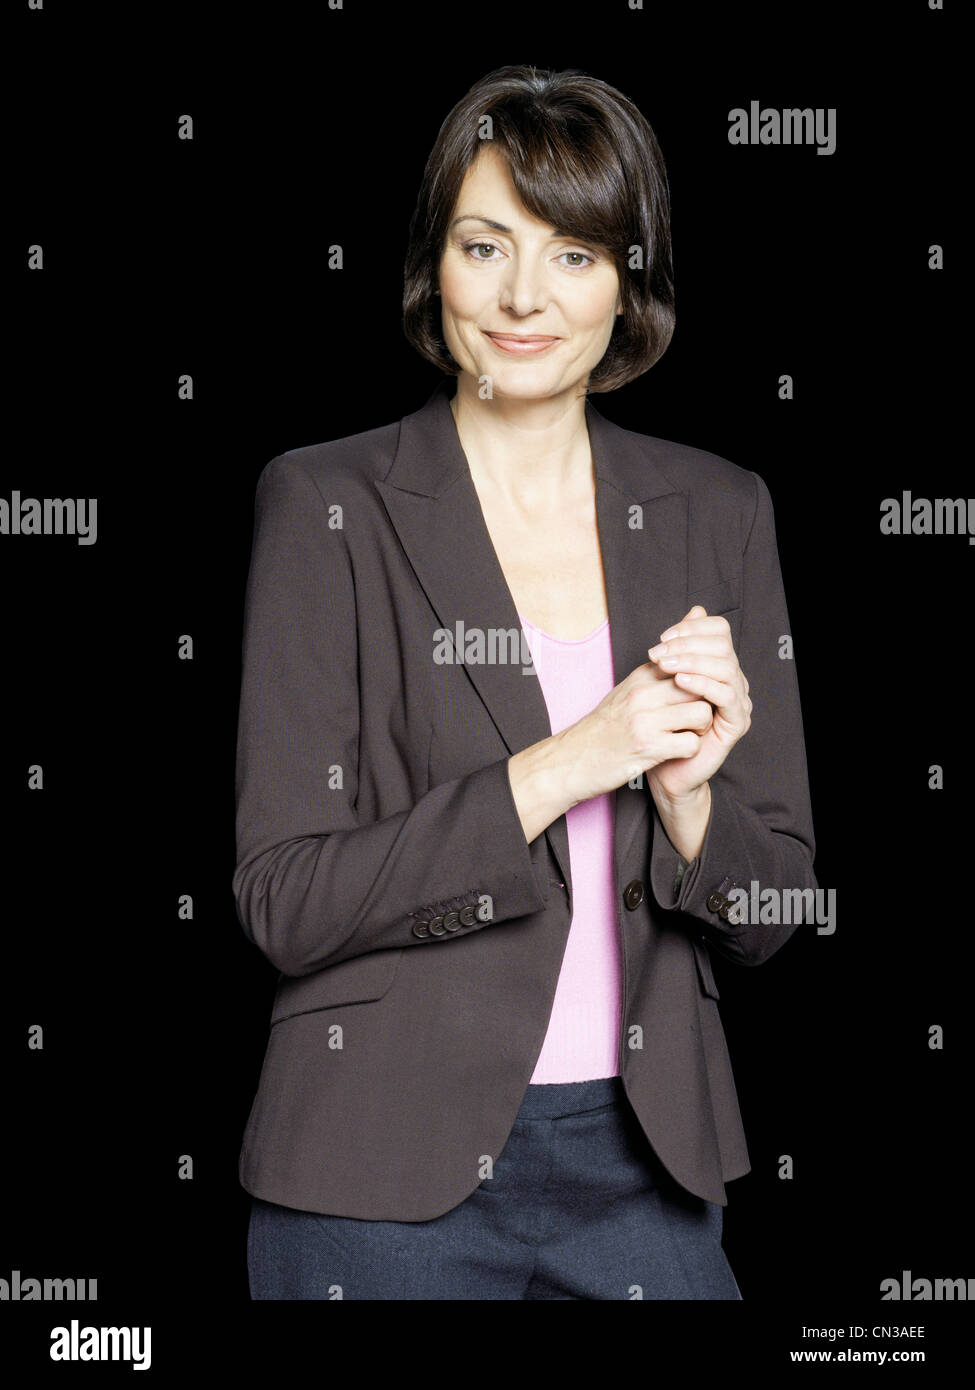 Woman with hands clasped, portrait - Stock Image